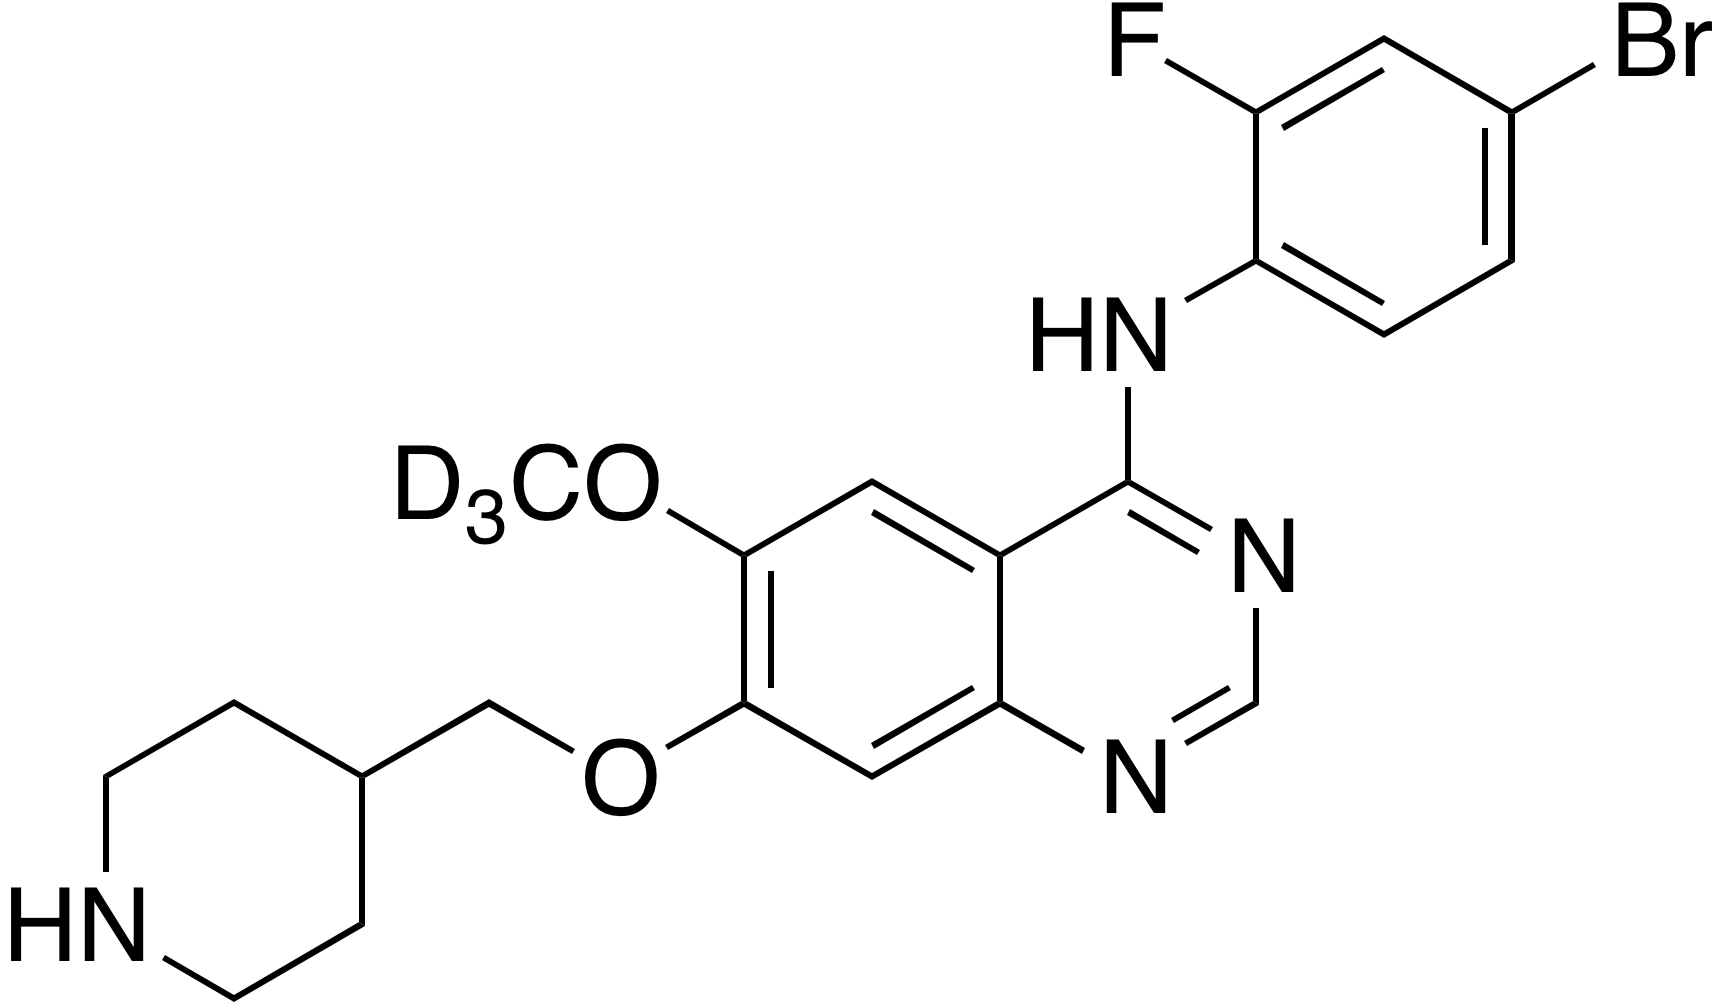 N-Demethyl Vandetanib-d3